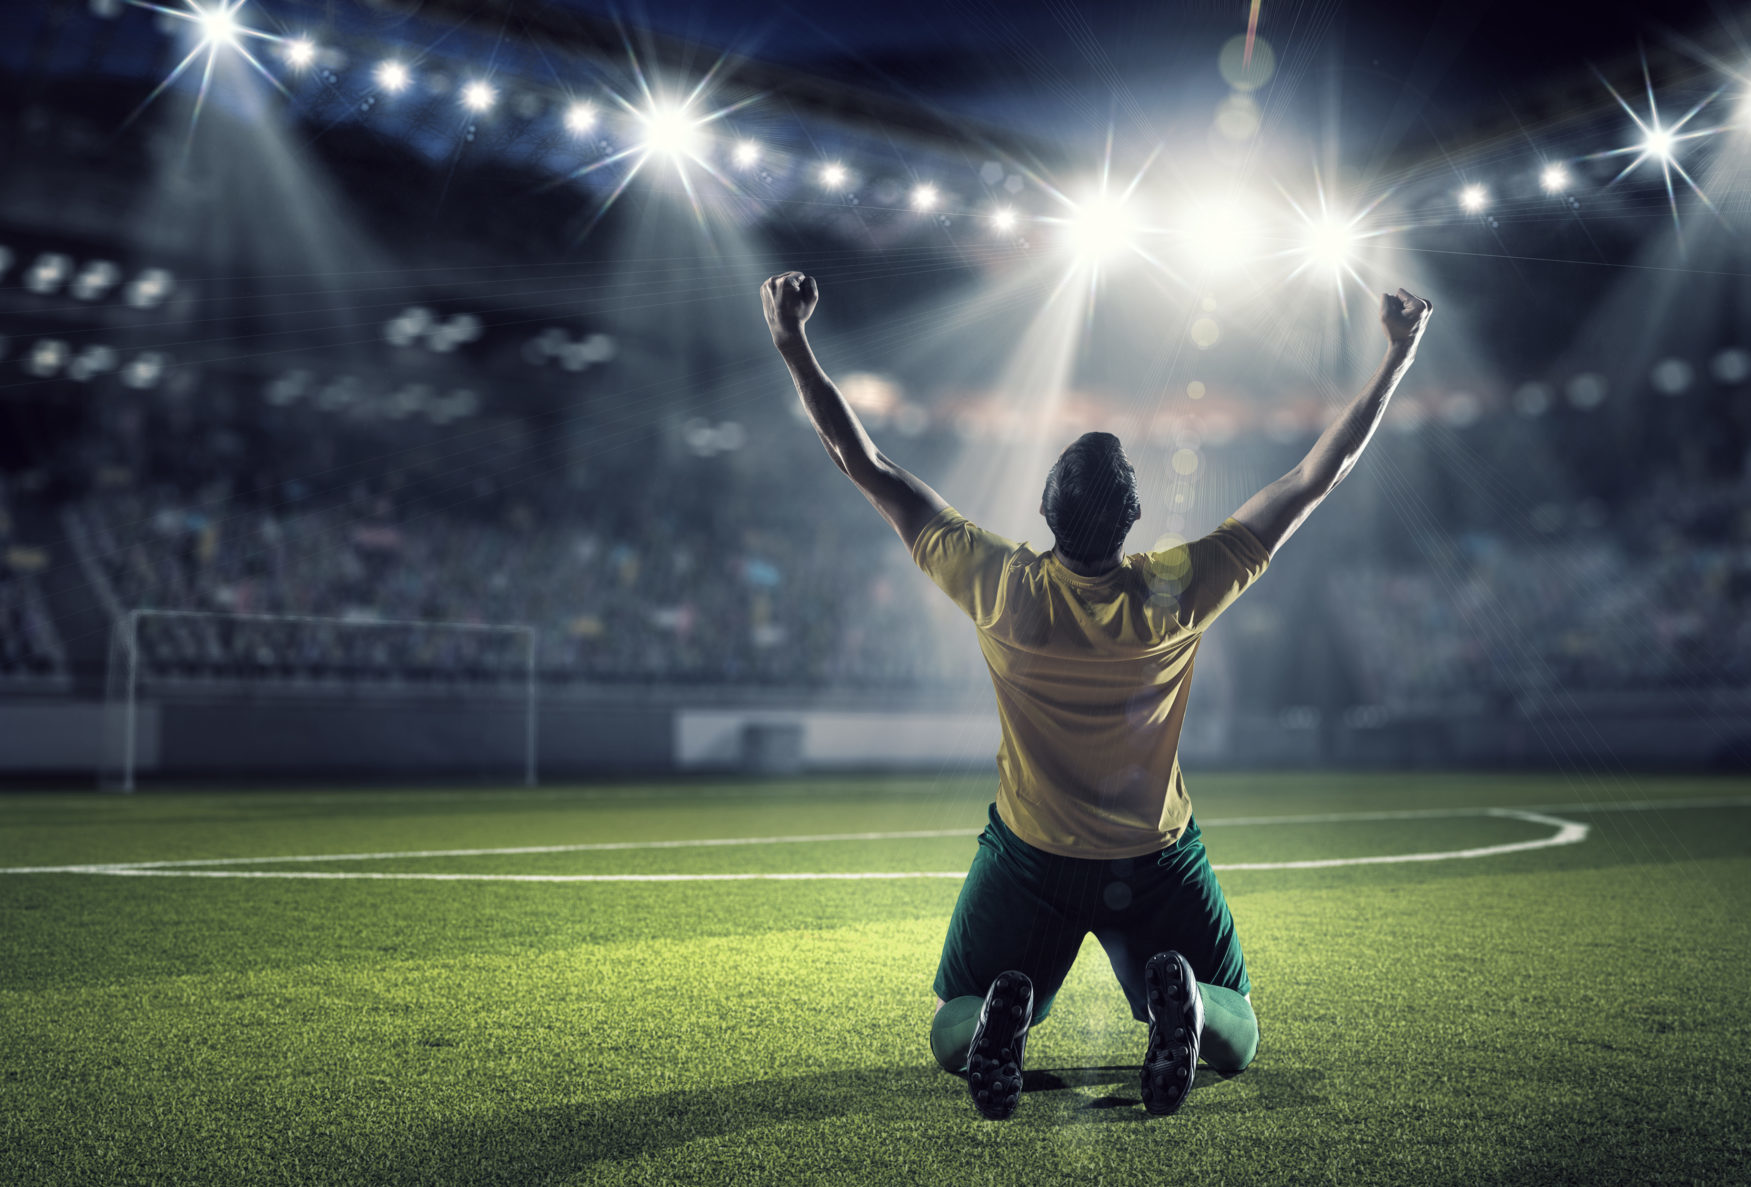 How to Turn Your Favorite Sports Movie Quotes into a Game Plan for Life